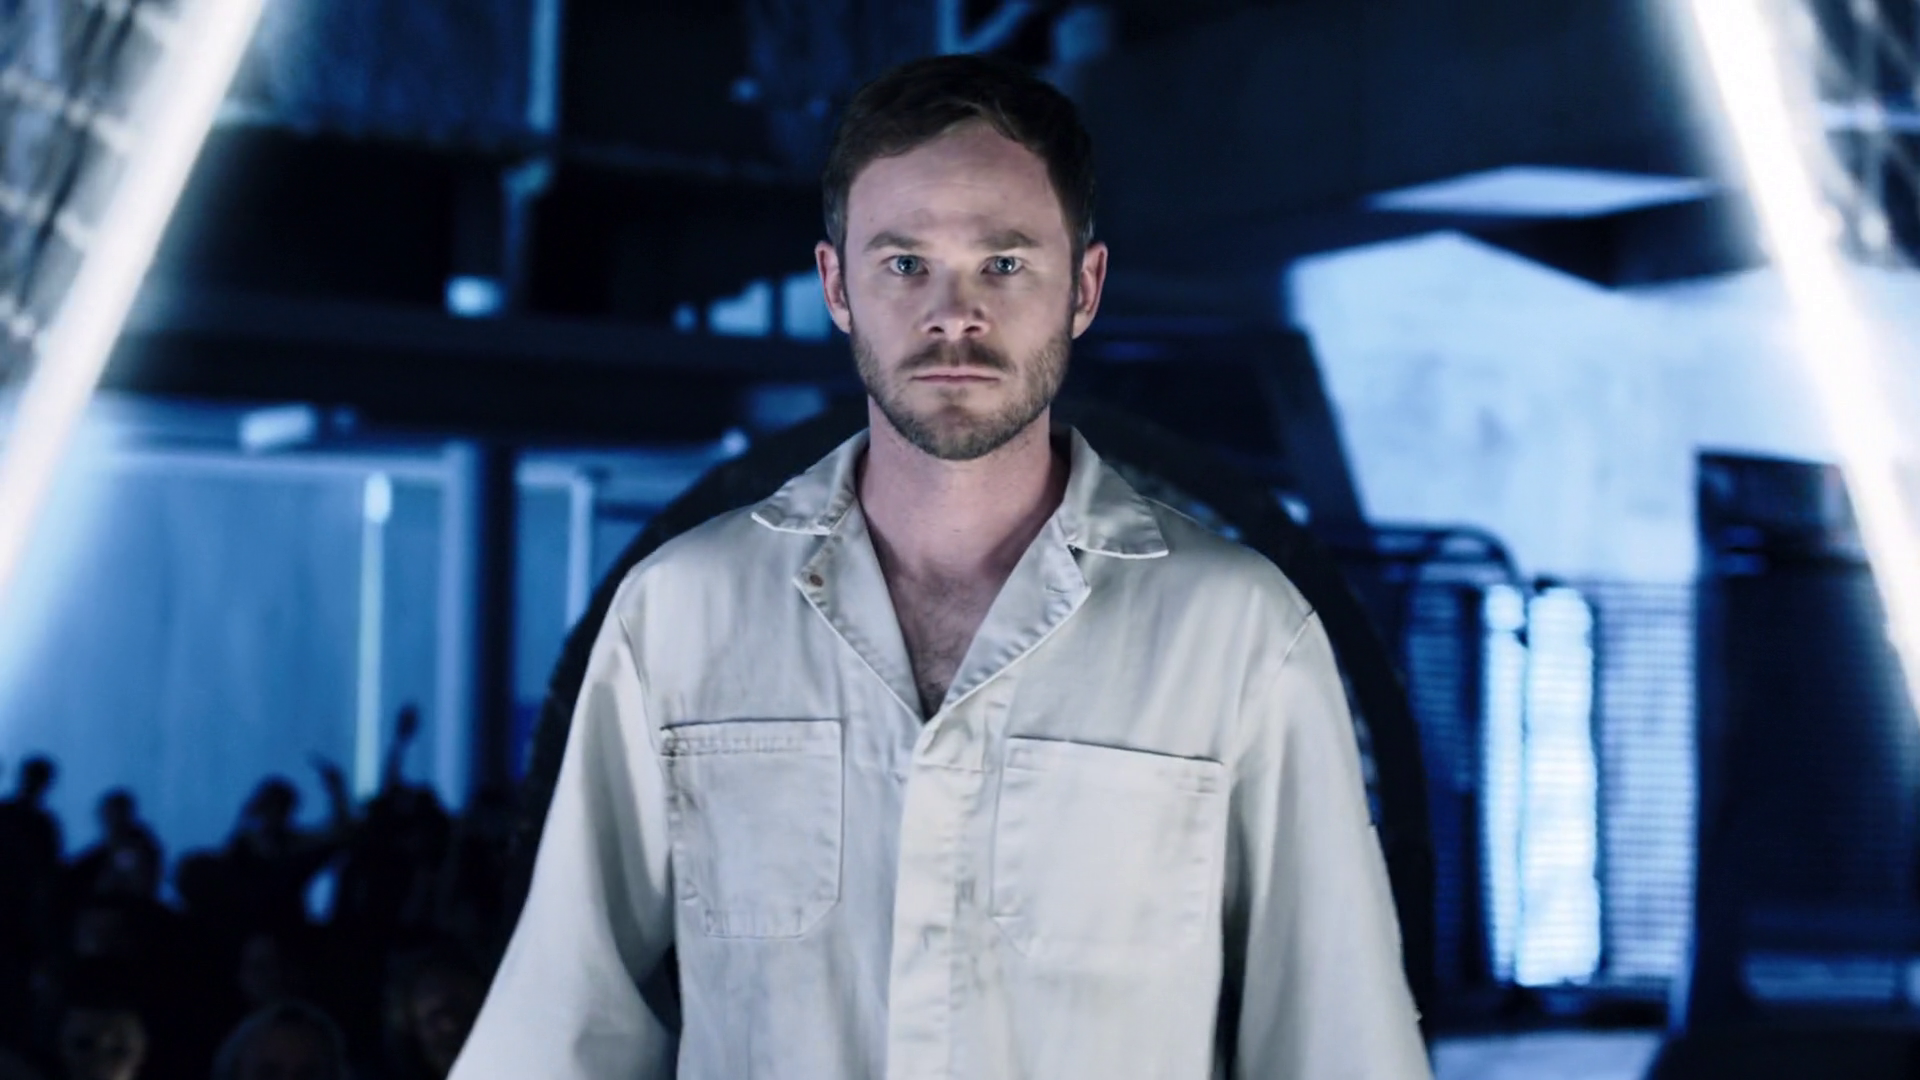 aaron ashmore twinaaron ashmore and shawn ashmore, aaron ashmore height, aaron ashmore instagram, aaron ashmore quantum break, aaron ashmore and brother, aaron ashmore, aaron ashmore imdb, aaron ashmore movies and tv shows, aaron ashmore smallville, aaron ashmore twitter, aaron ashmore wiki, aaron ashmore and zoe kate, aaron ashmore wedding, aaron ashmore chef, aaron ashmore 2015, aaron ashmore twin, aaron ashmore filmographie, aaron ashmore net worth, aaron ashmore movies, aaron ashmore and his brother